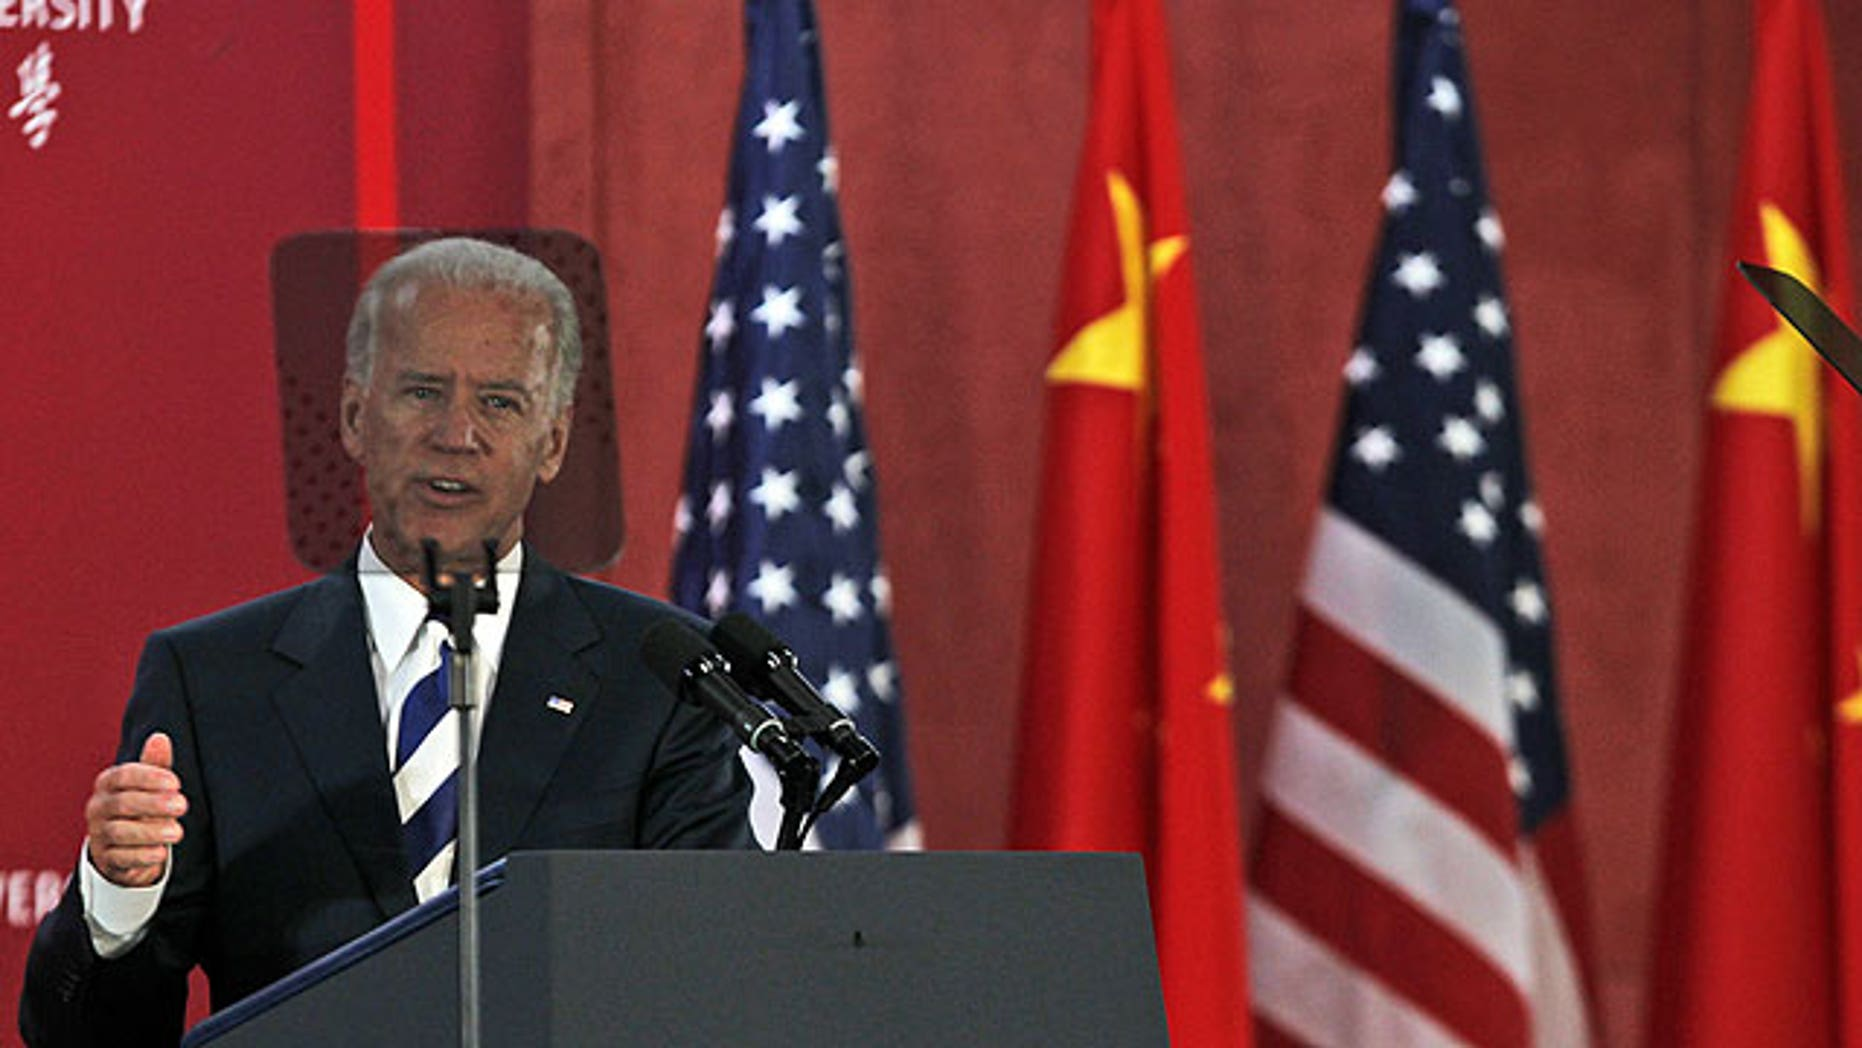 Aug 21: U.S. Vice President Joe Biden's head is framed by the teleprompter as he delivers a speech at Sichuan University in Chengdu in southwestern China's Sichuan province.